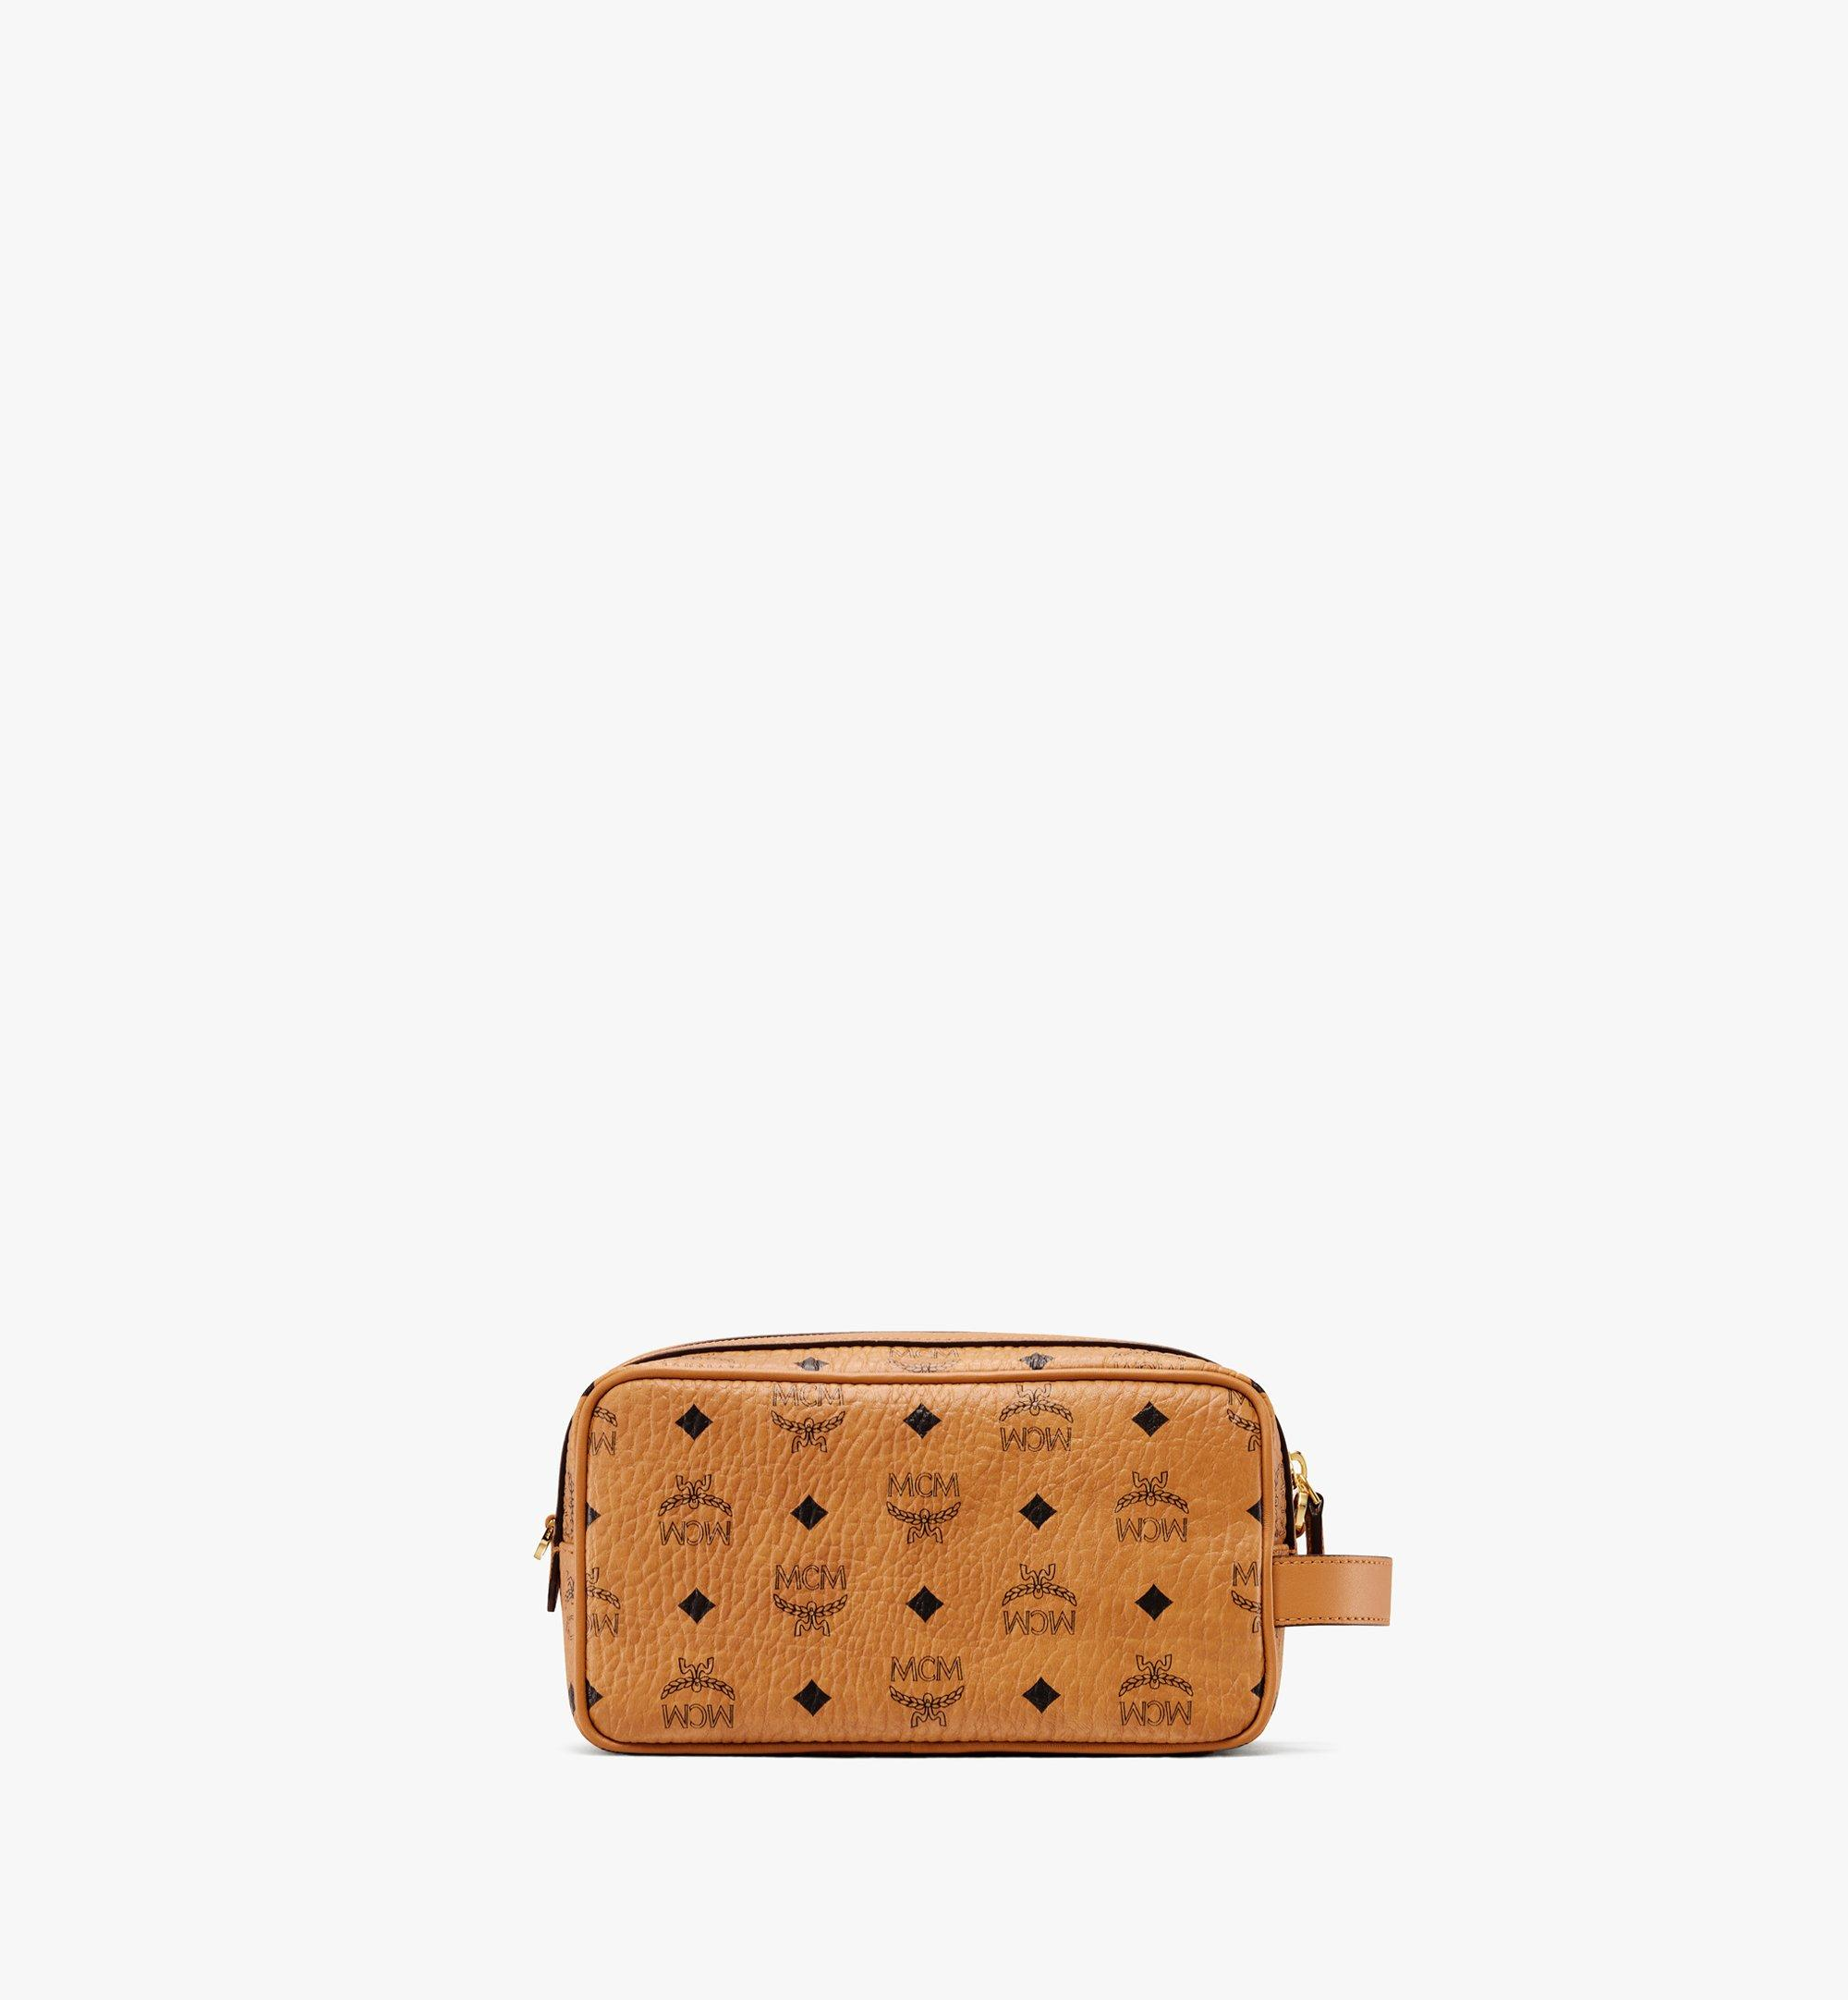 MCM Wash Bag in Visetos Cognac MXZ9AVI51CO001 Alternate View 2